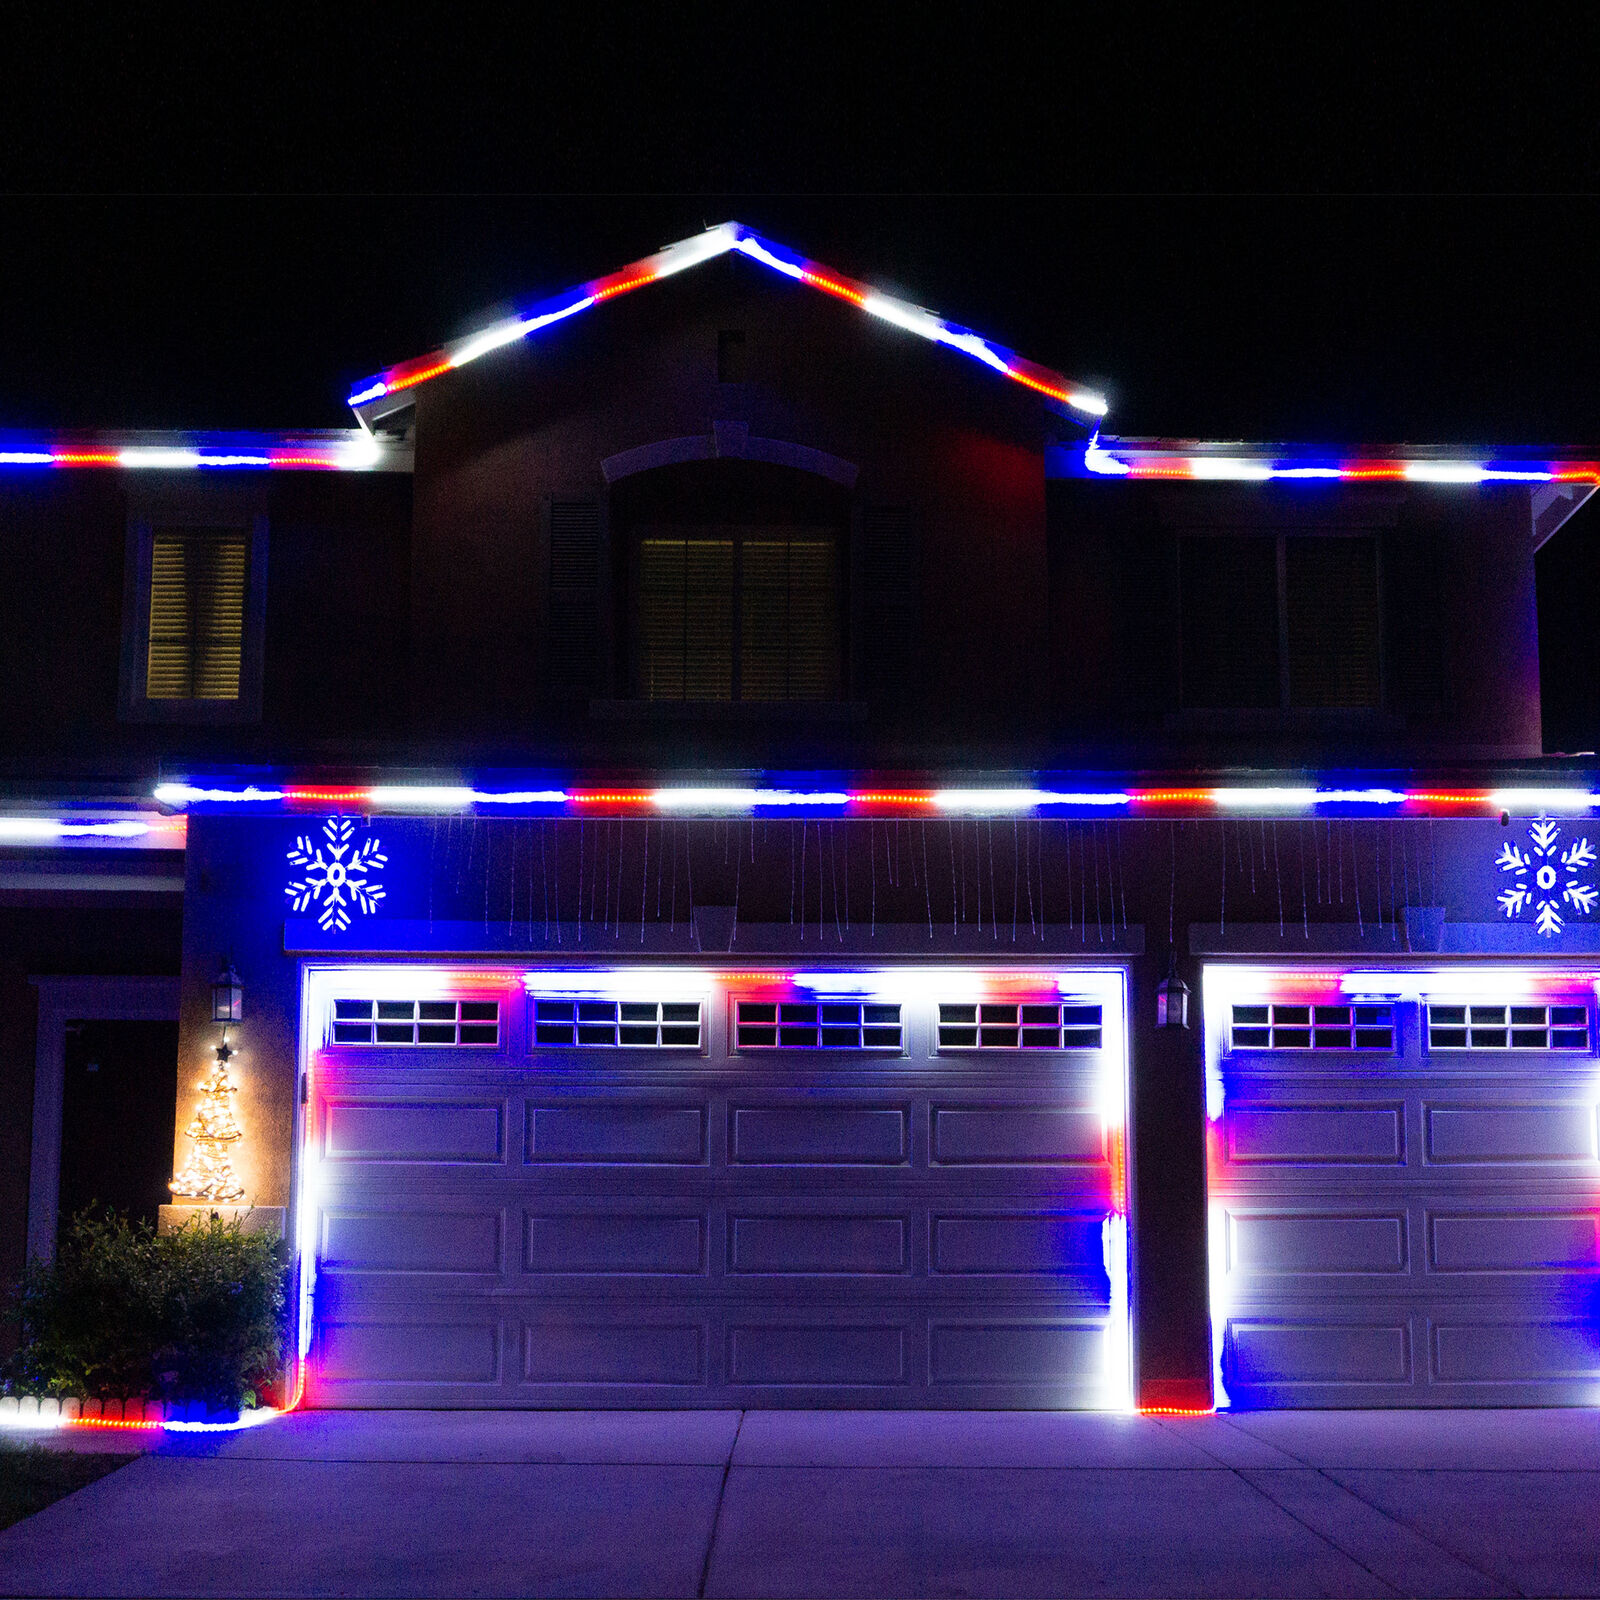 Details About 100 Rwb Rope Led Lights Indoor Outdoor Party Wedding Holiday Christmas New Year